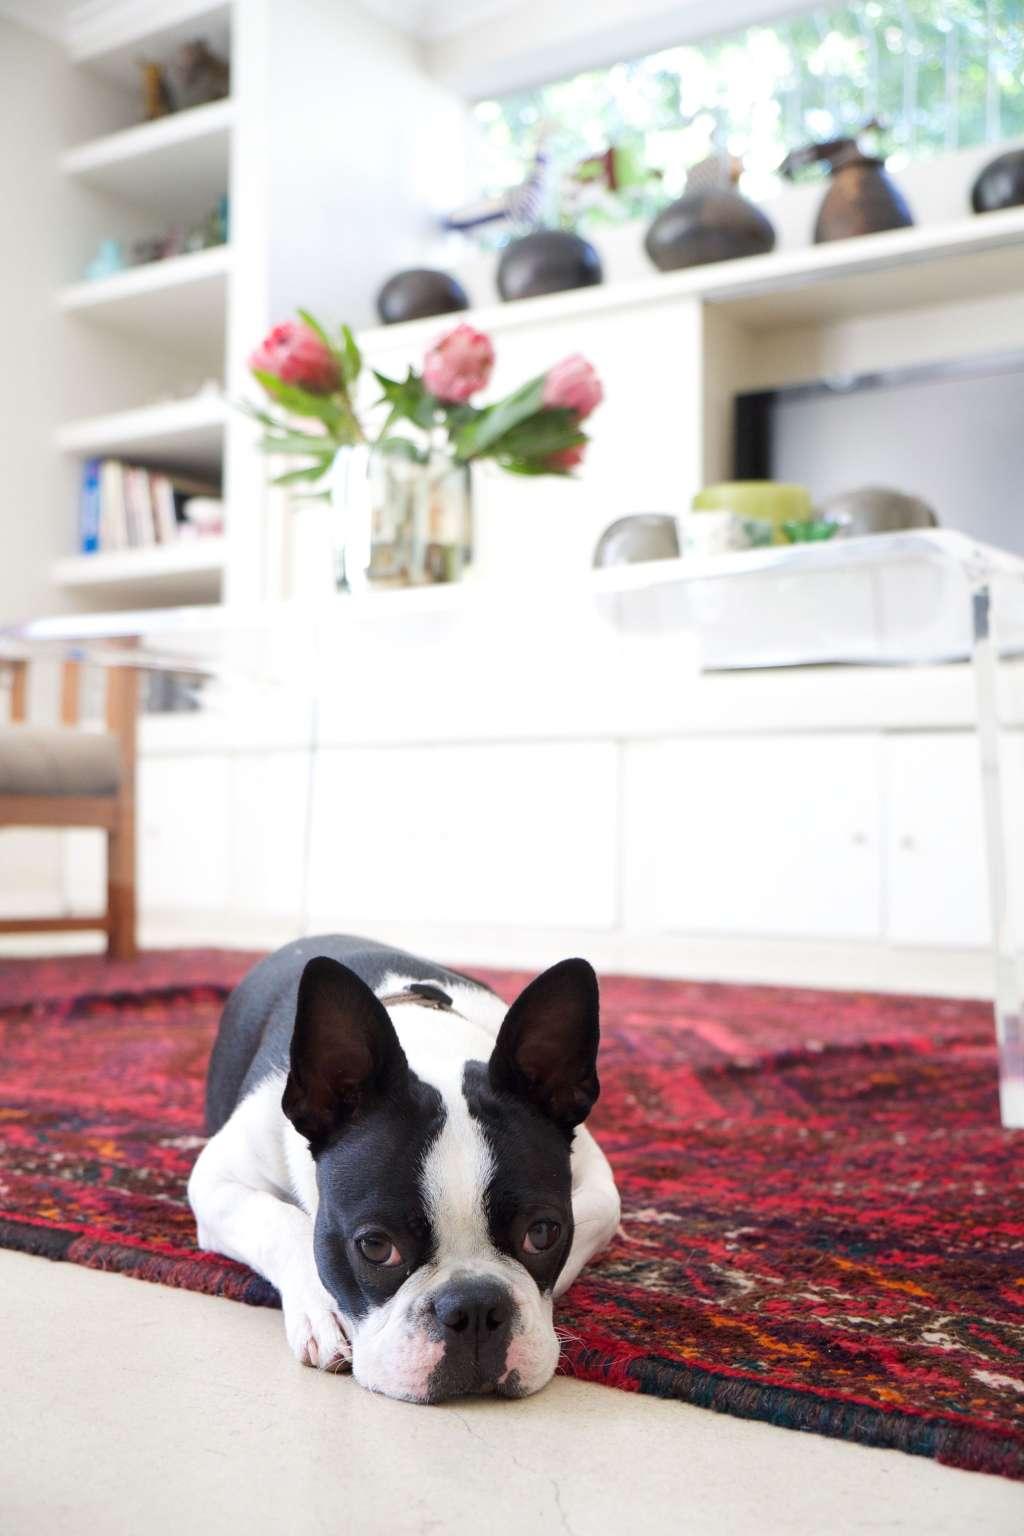 6 Easy Pet Clean-Up Hacks Everyone Should Know